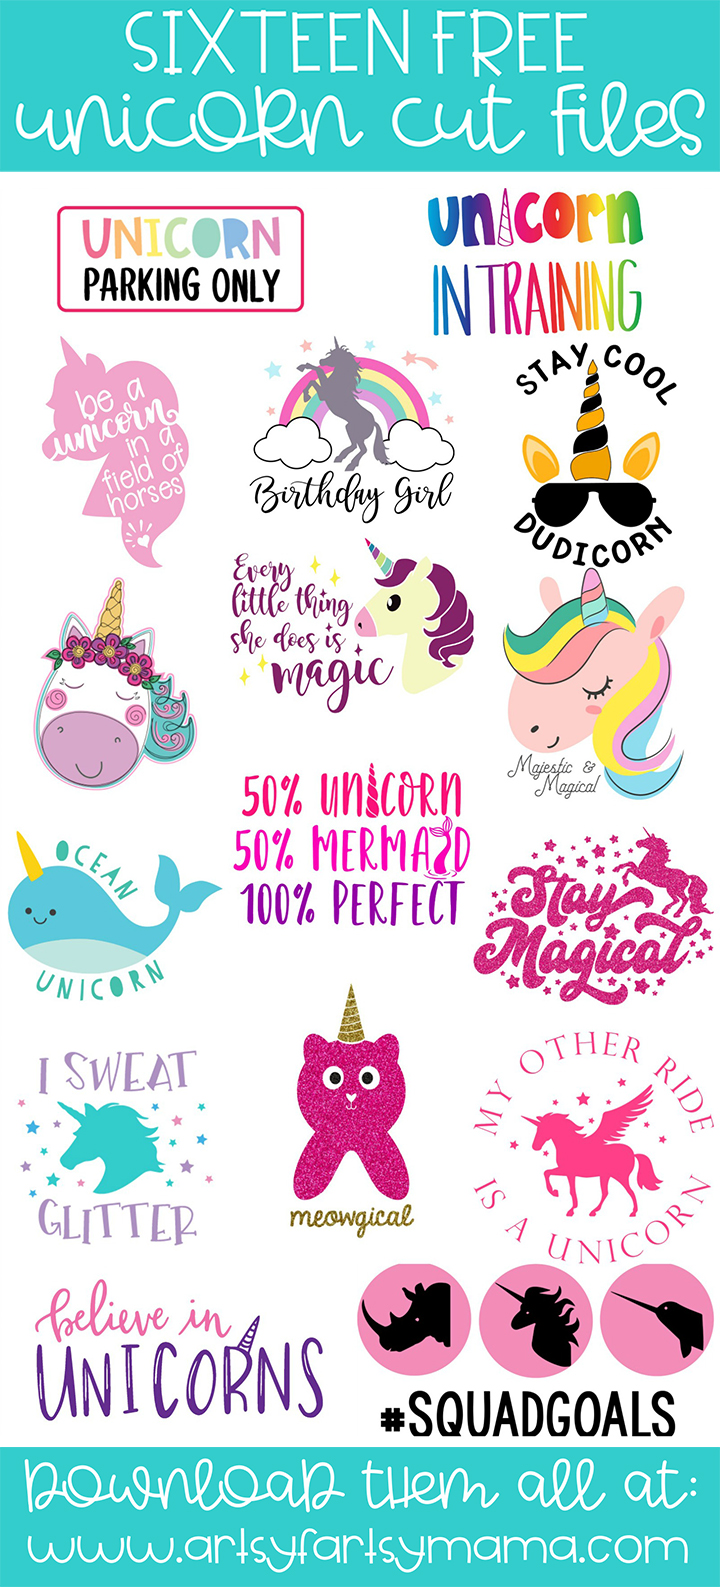 16 Free Unicorn Cut Files